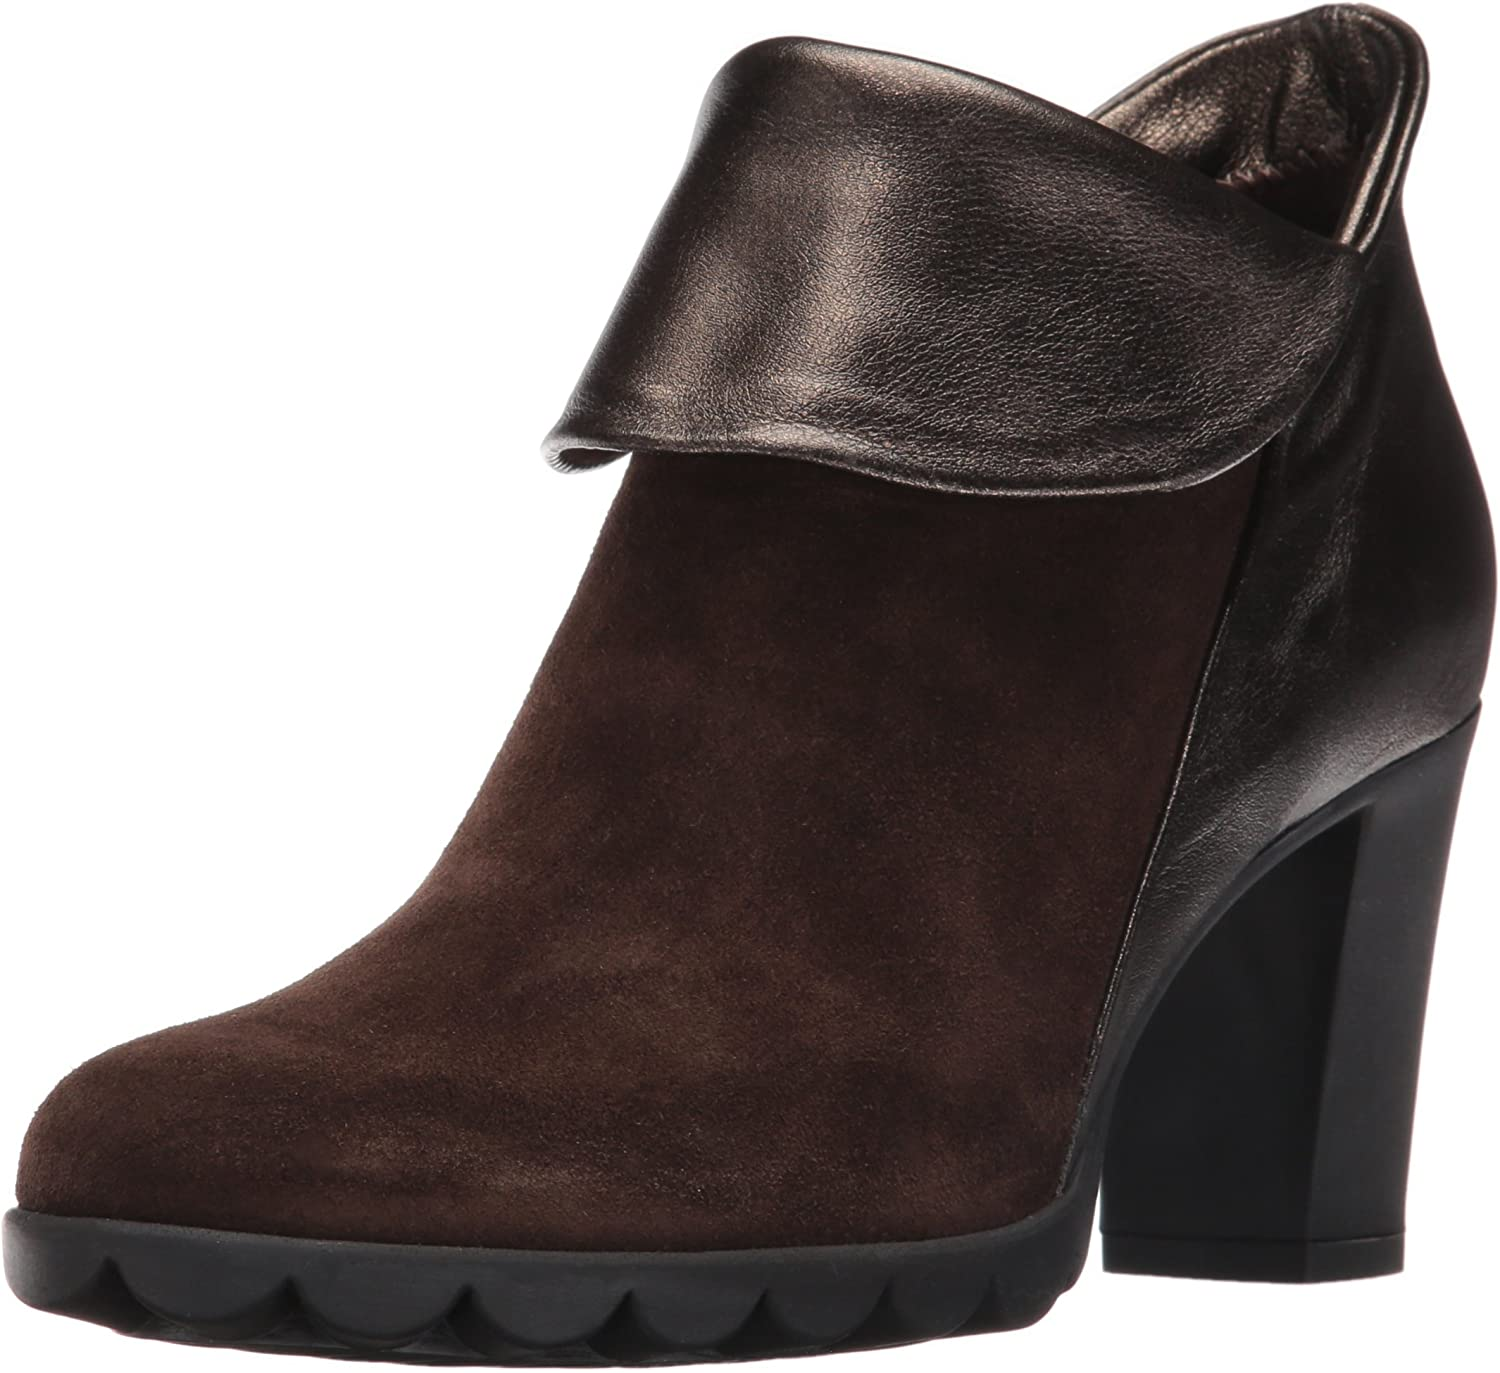 The Flexx Womens Dipartment Ankle Bootie